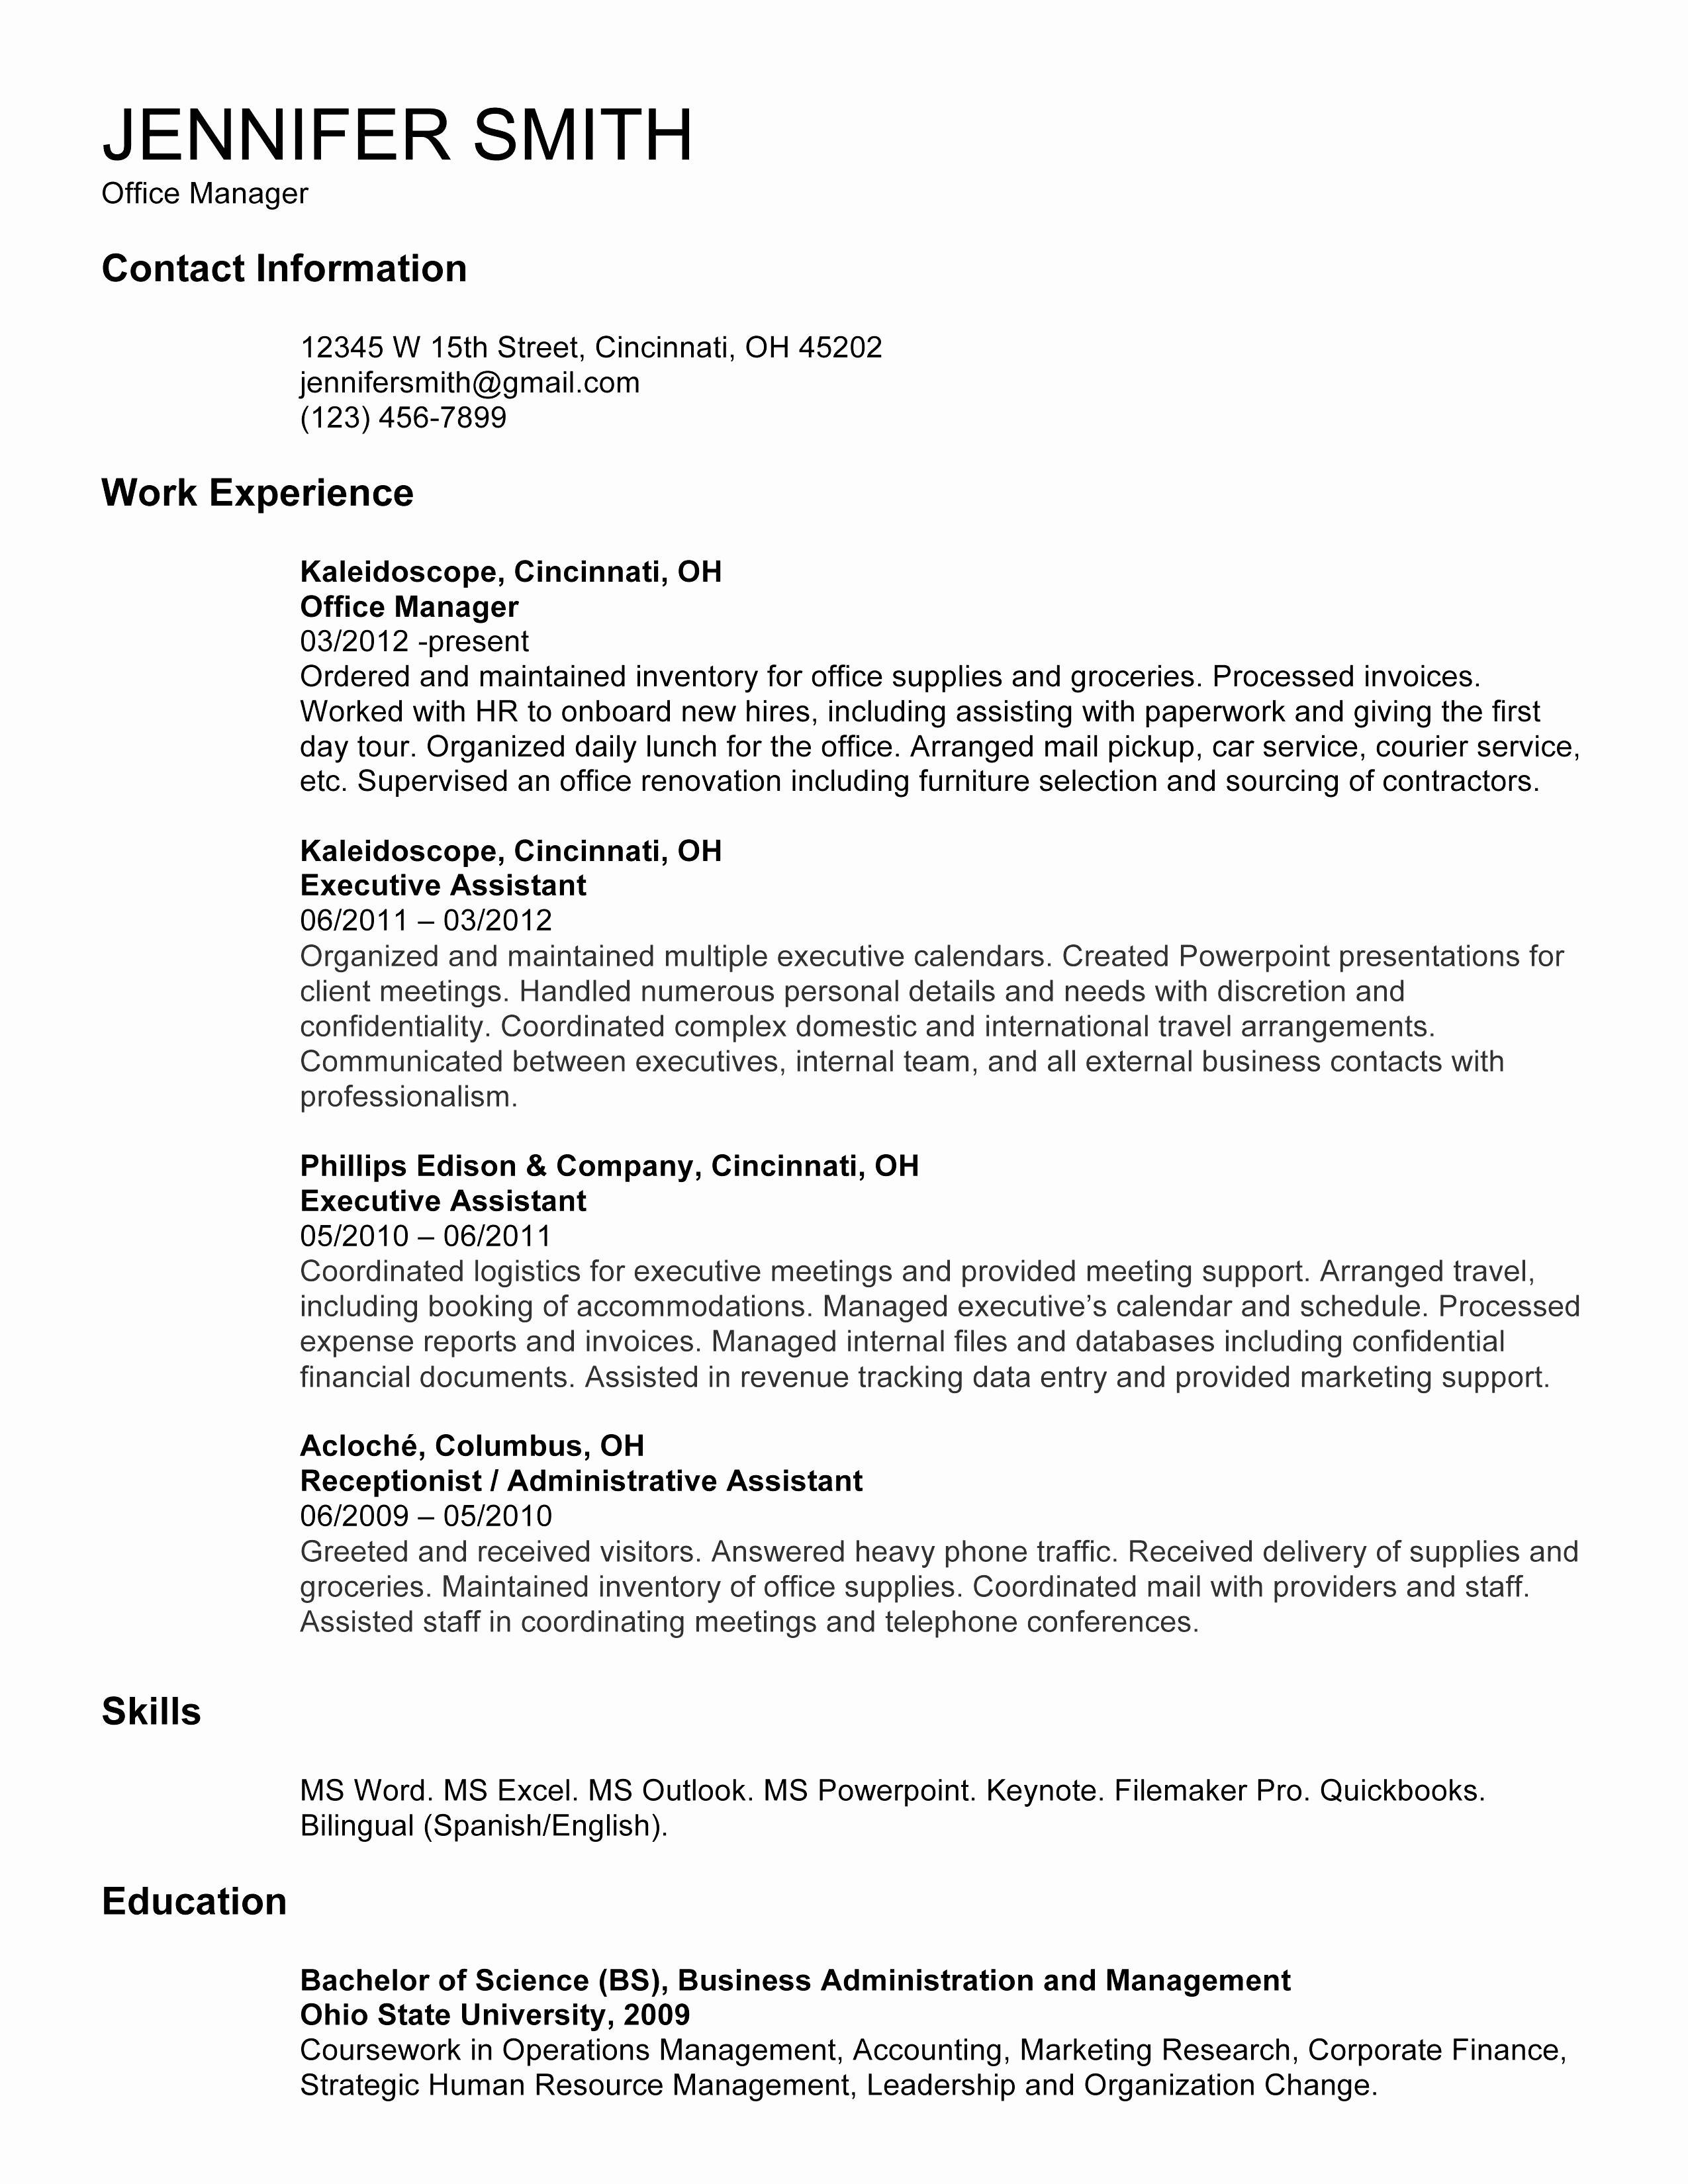 Cover Letter Template for Receptionist - Cover Letter Template Resume Fresh Managerial Cover Letter Beautiful